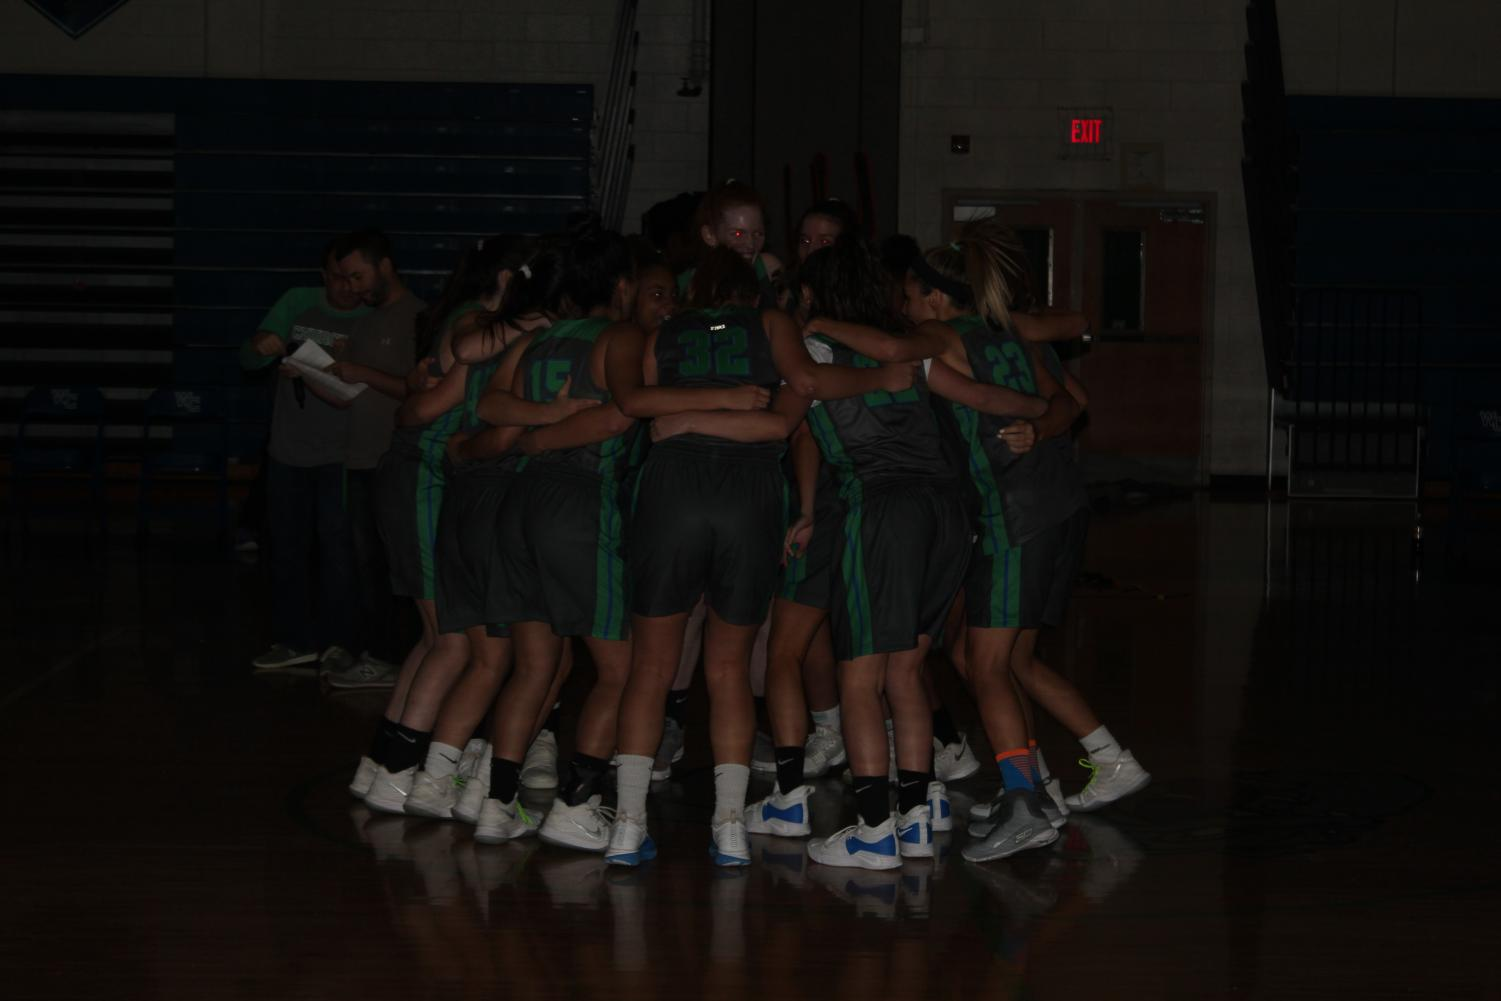 The Varsity Girls Basketball team huddles before the start of the event.